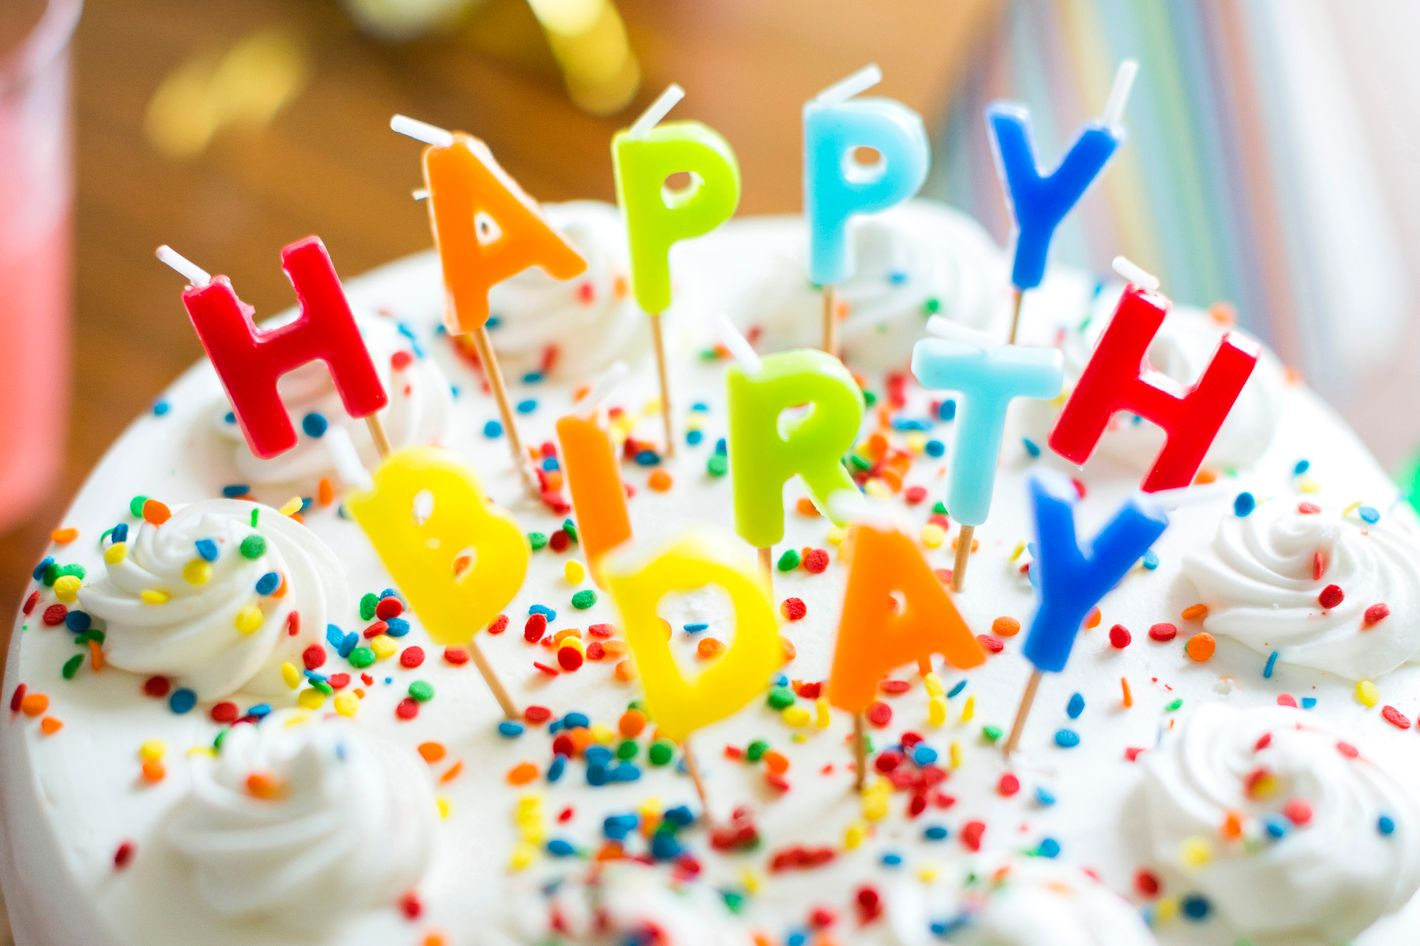 Pleasant The Happy Birthday Song Is Now Part Of The Public Domain Funny Birthday Cards Online Elaedamsfinfo